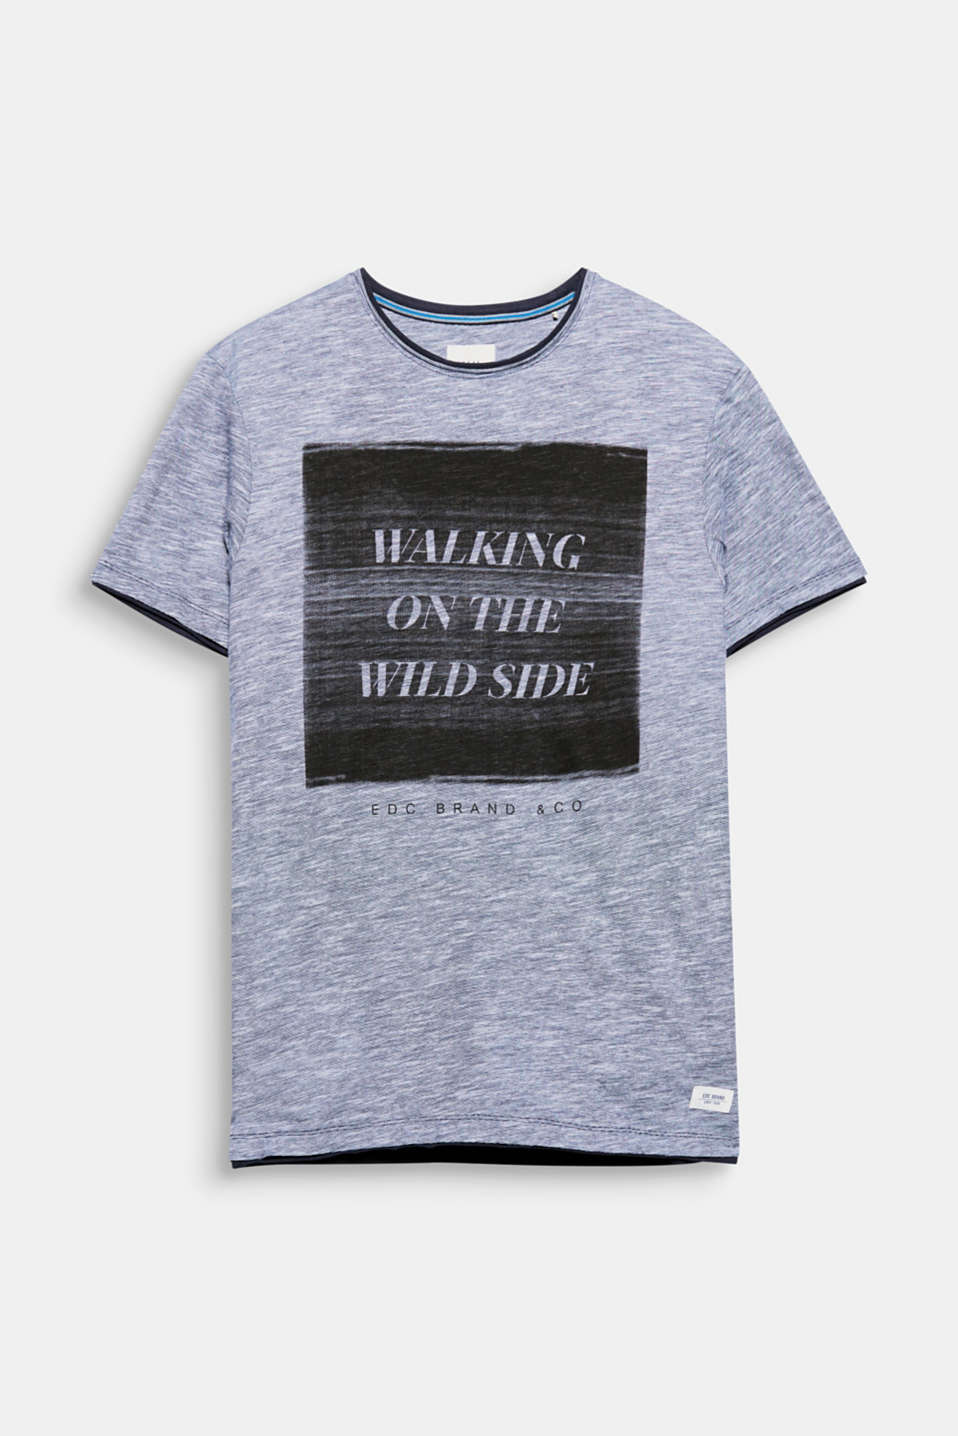 Walking on the wild side! Ein Statement, ein Print - auf diesem melierten T-Shirt aus Slub Jersey.